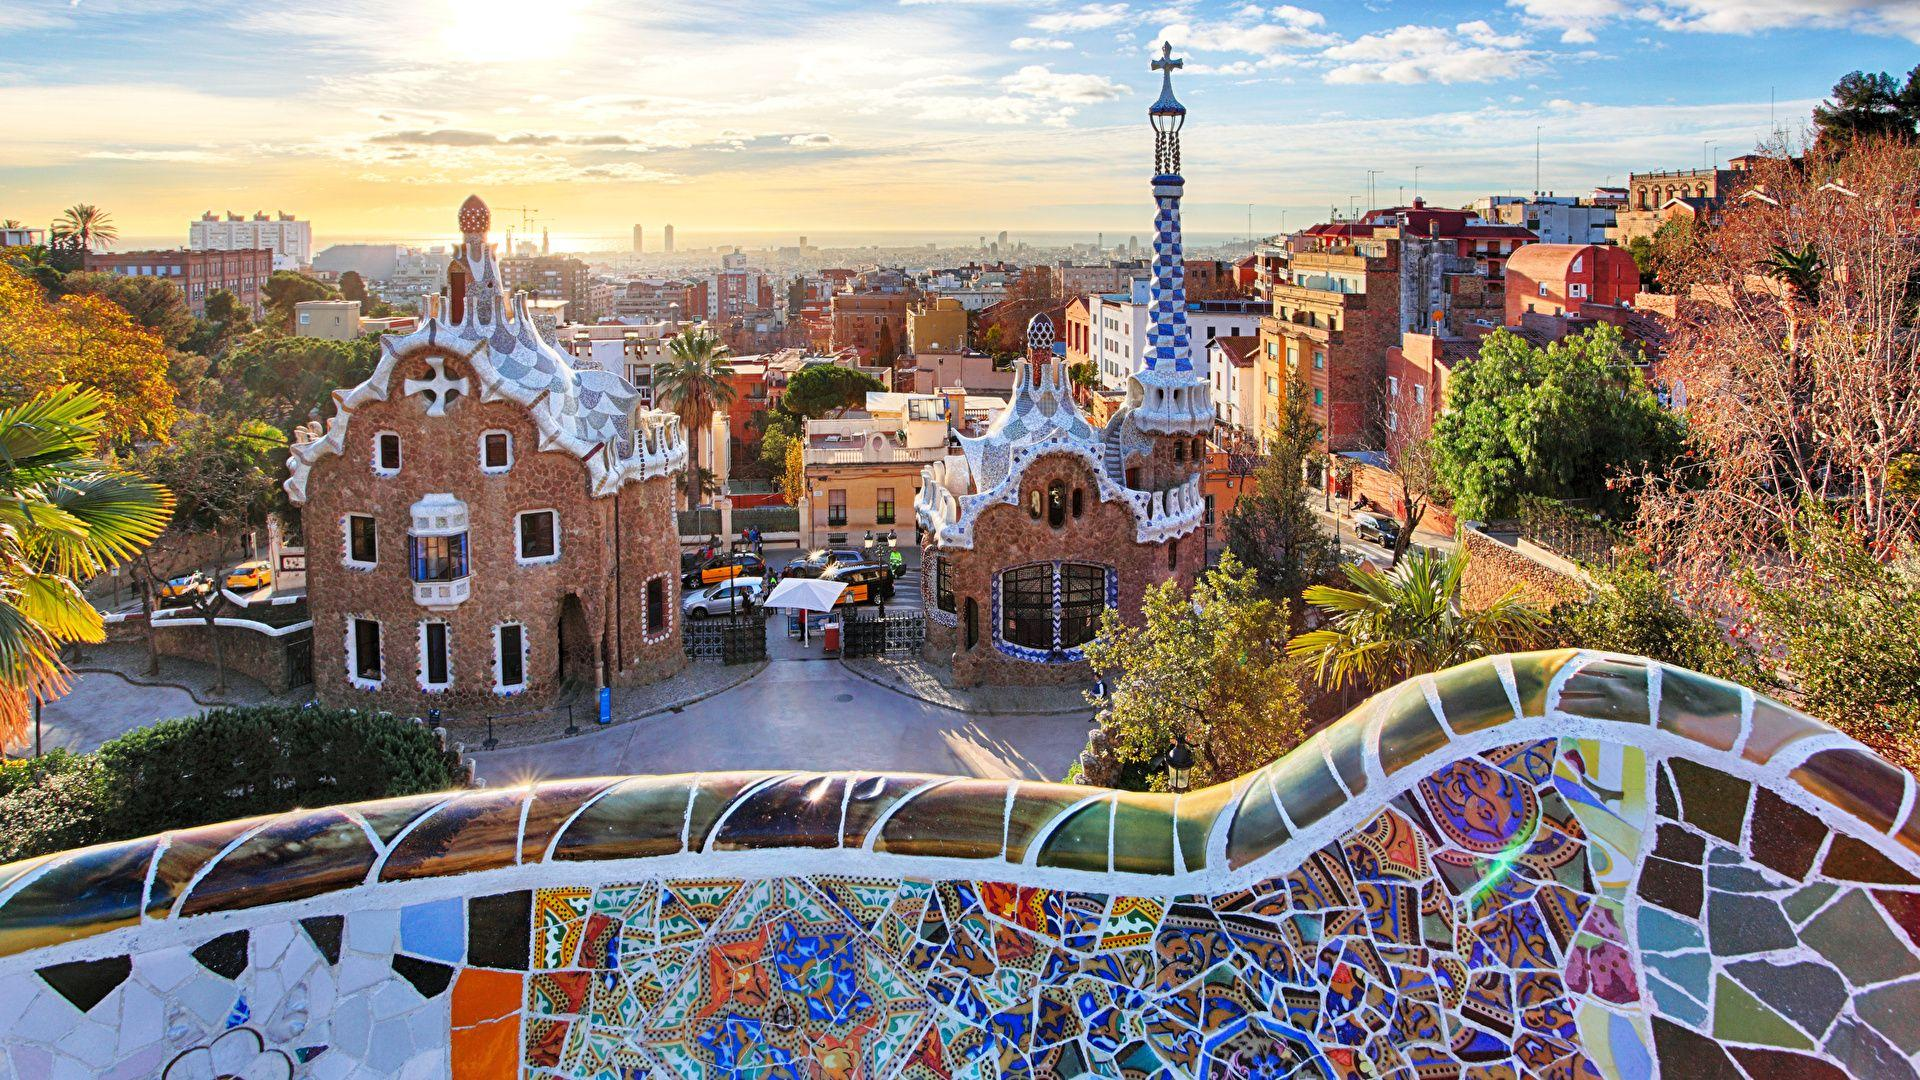 Image Barcelona Spain Park Guell Parks Cities Houses 1920x1080